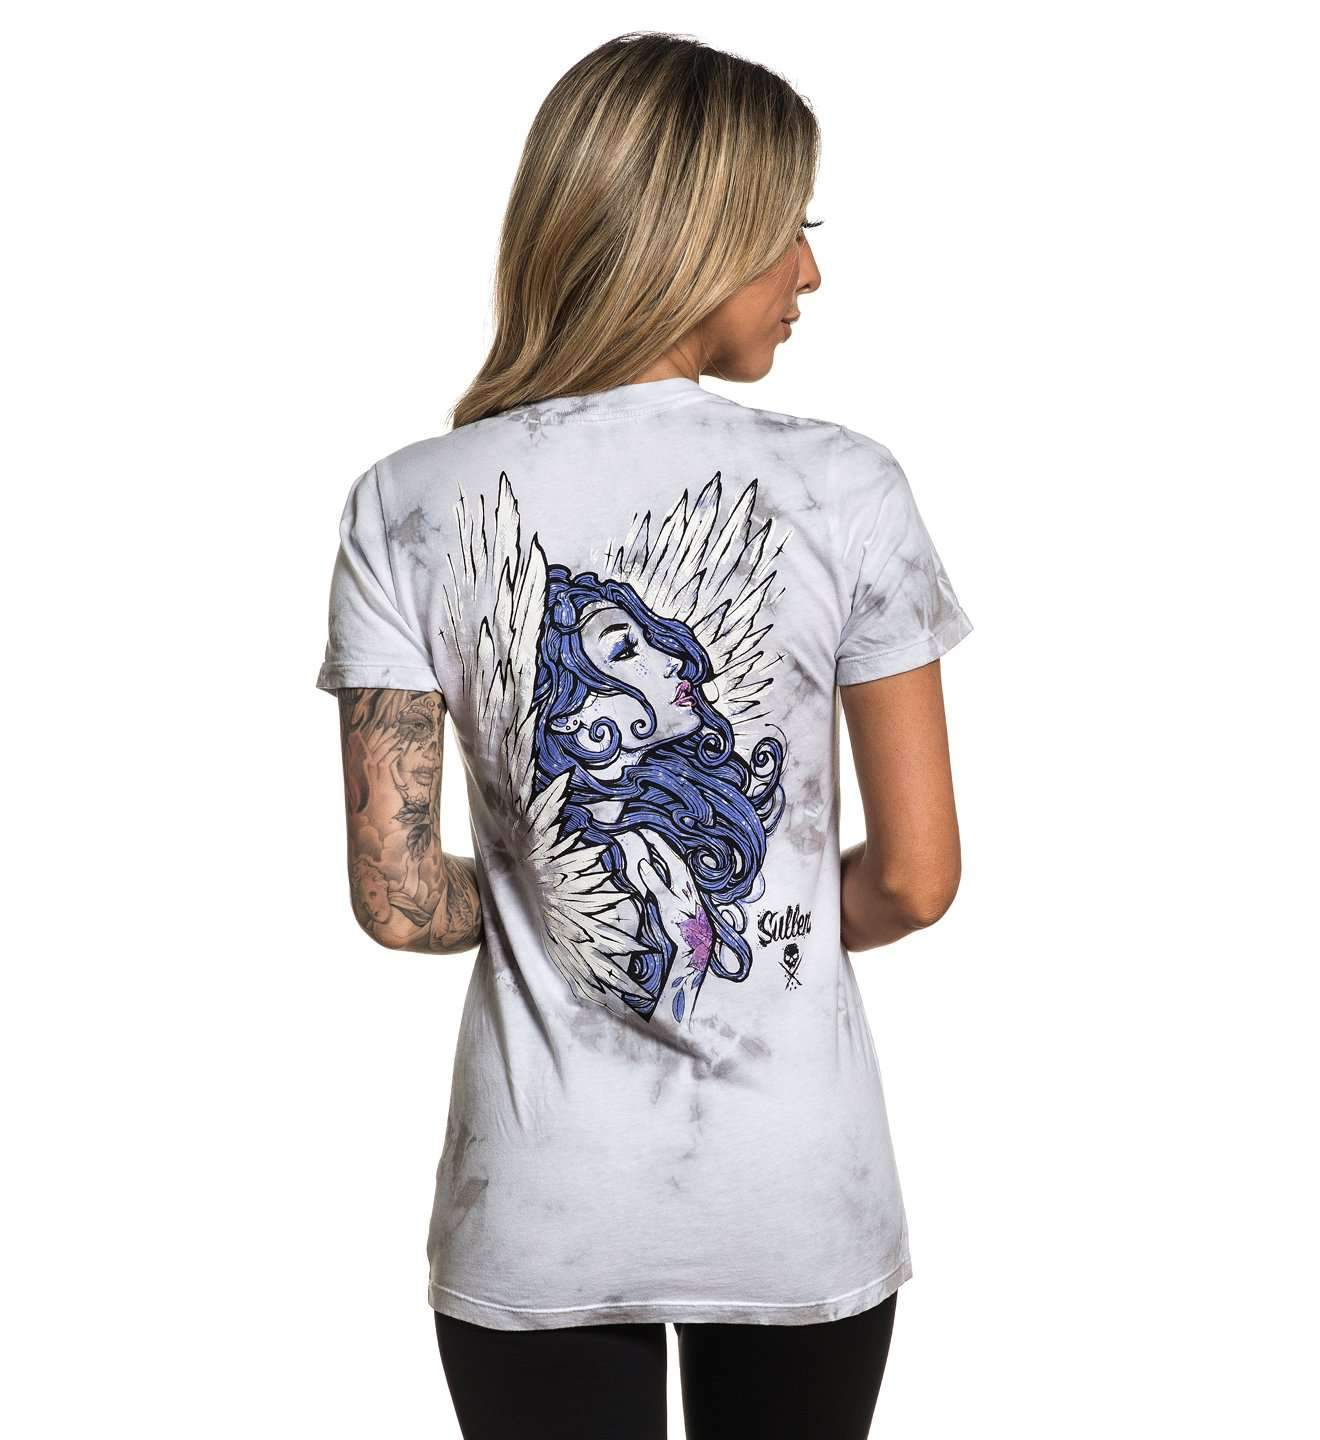 Angel Ink T-shirt by Sullen